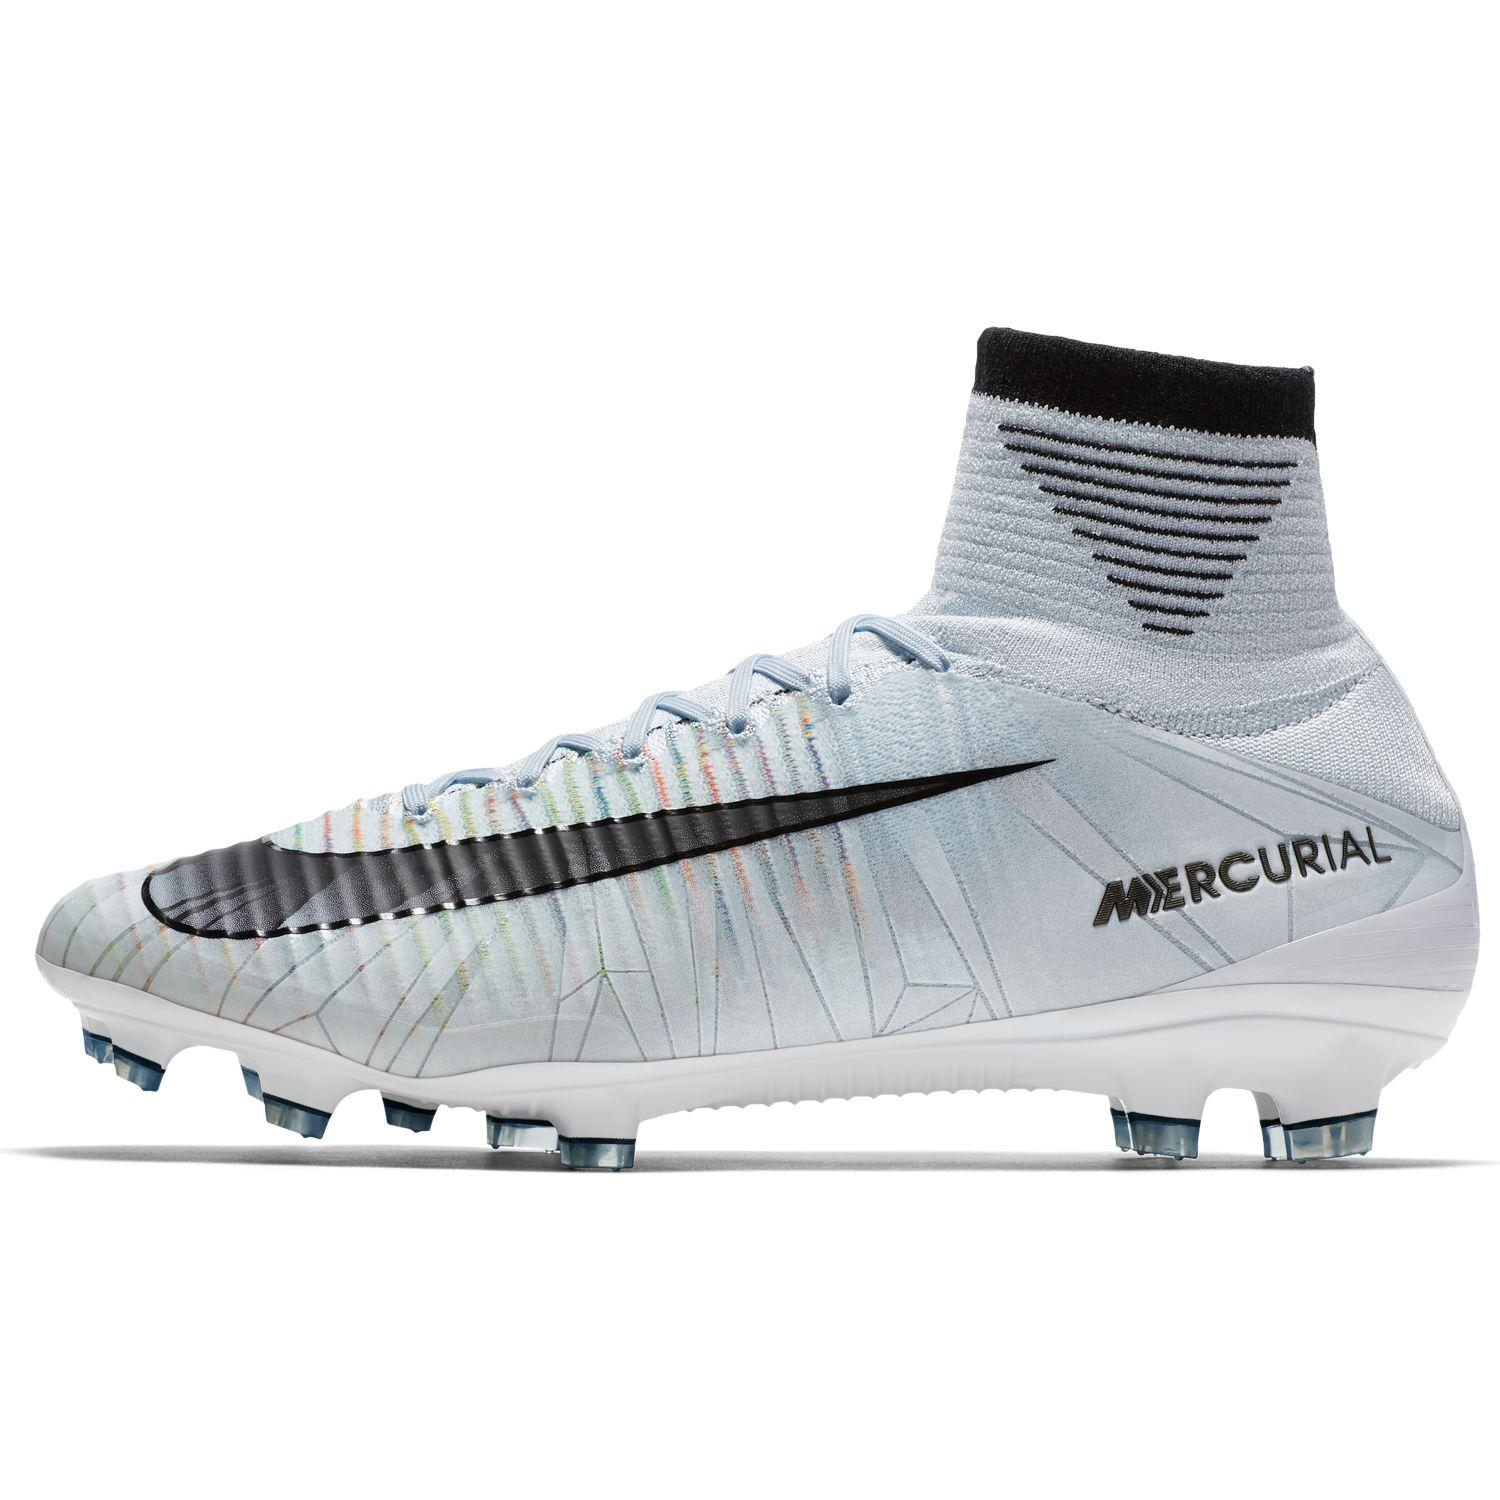 Nike Chaussures De Football Mercurial Superfly V Cr7 Fg Cristiano